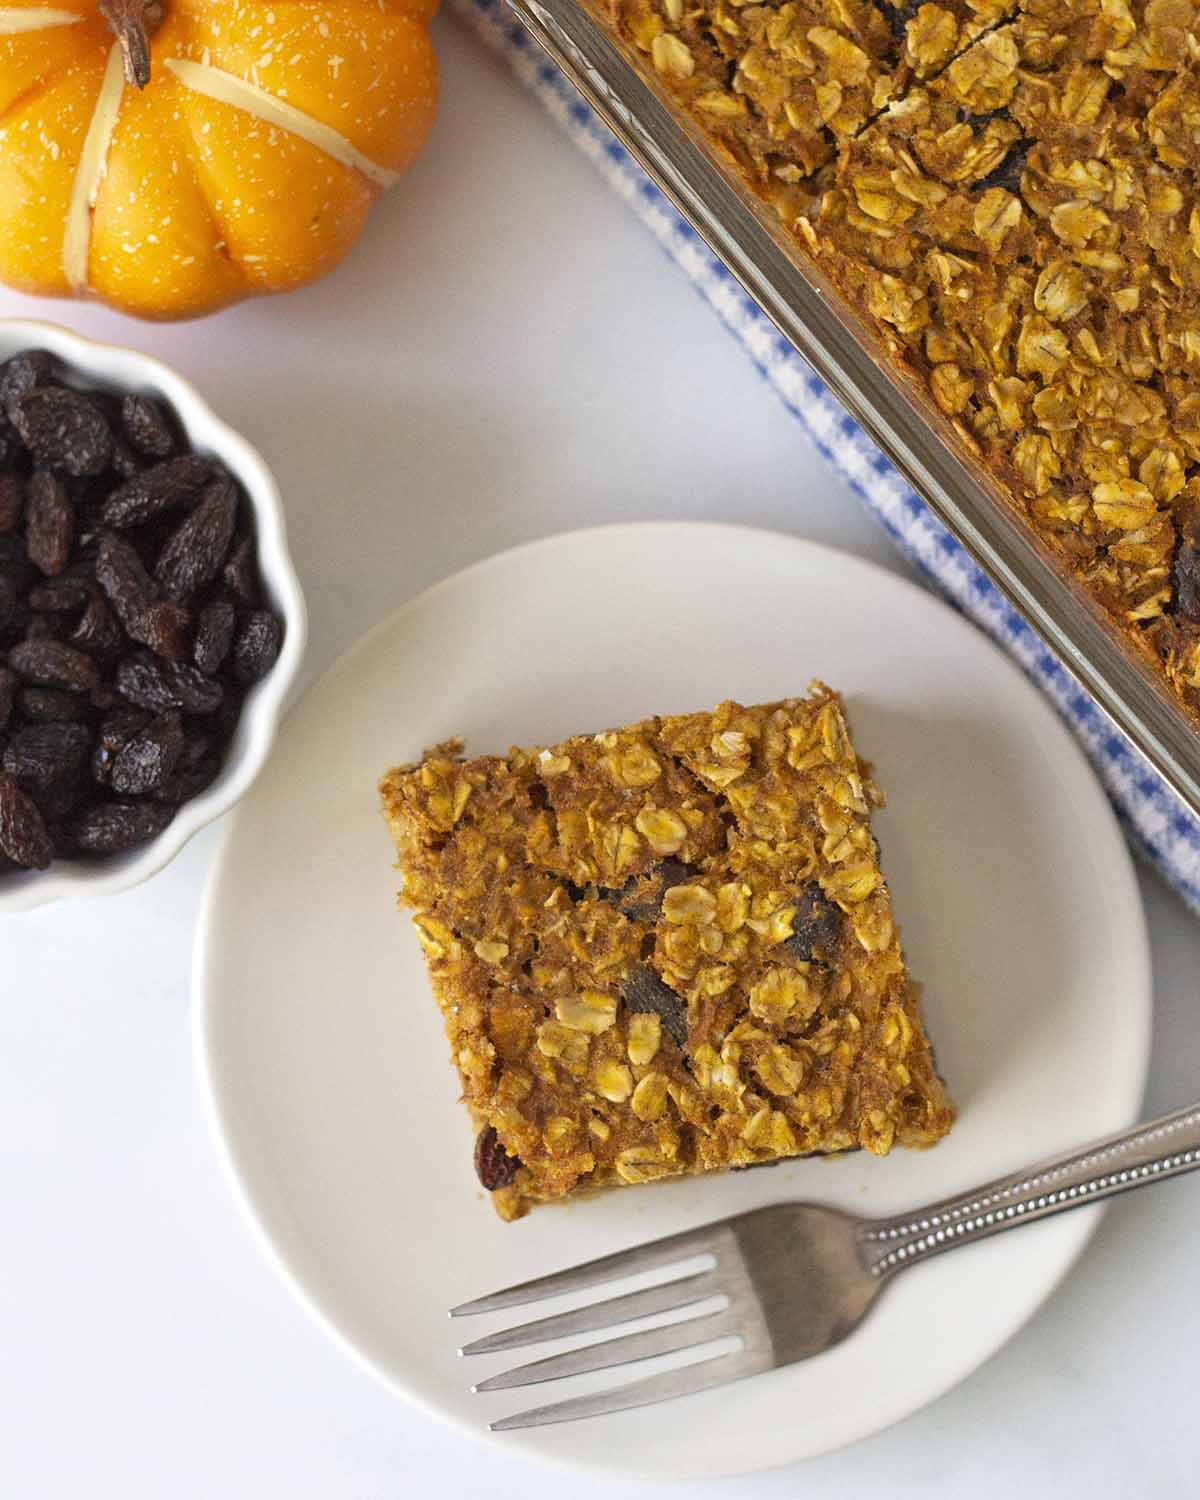 An overhead shot showing a slice of baked oatmeal with pumpkin on a plate, a fork also sits on the plate.